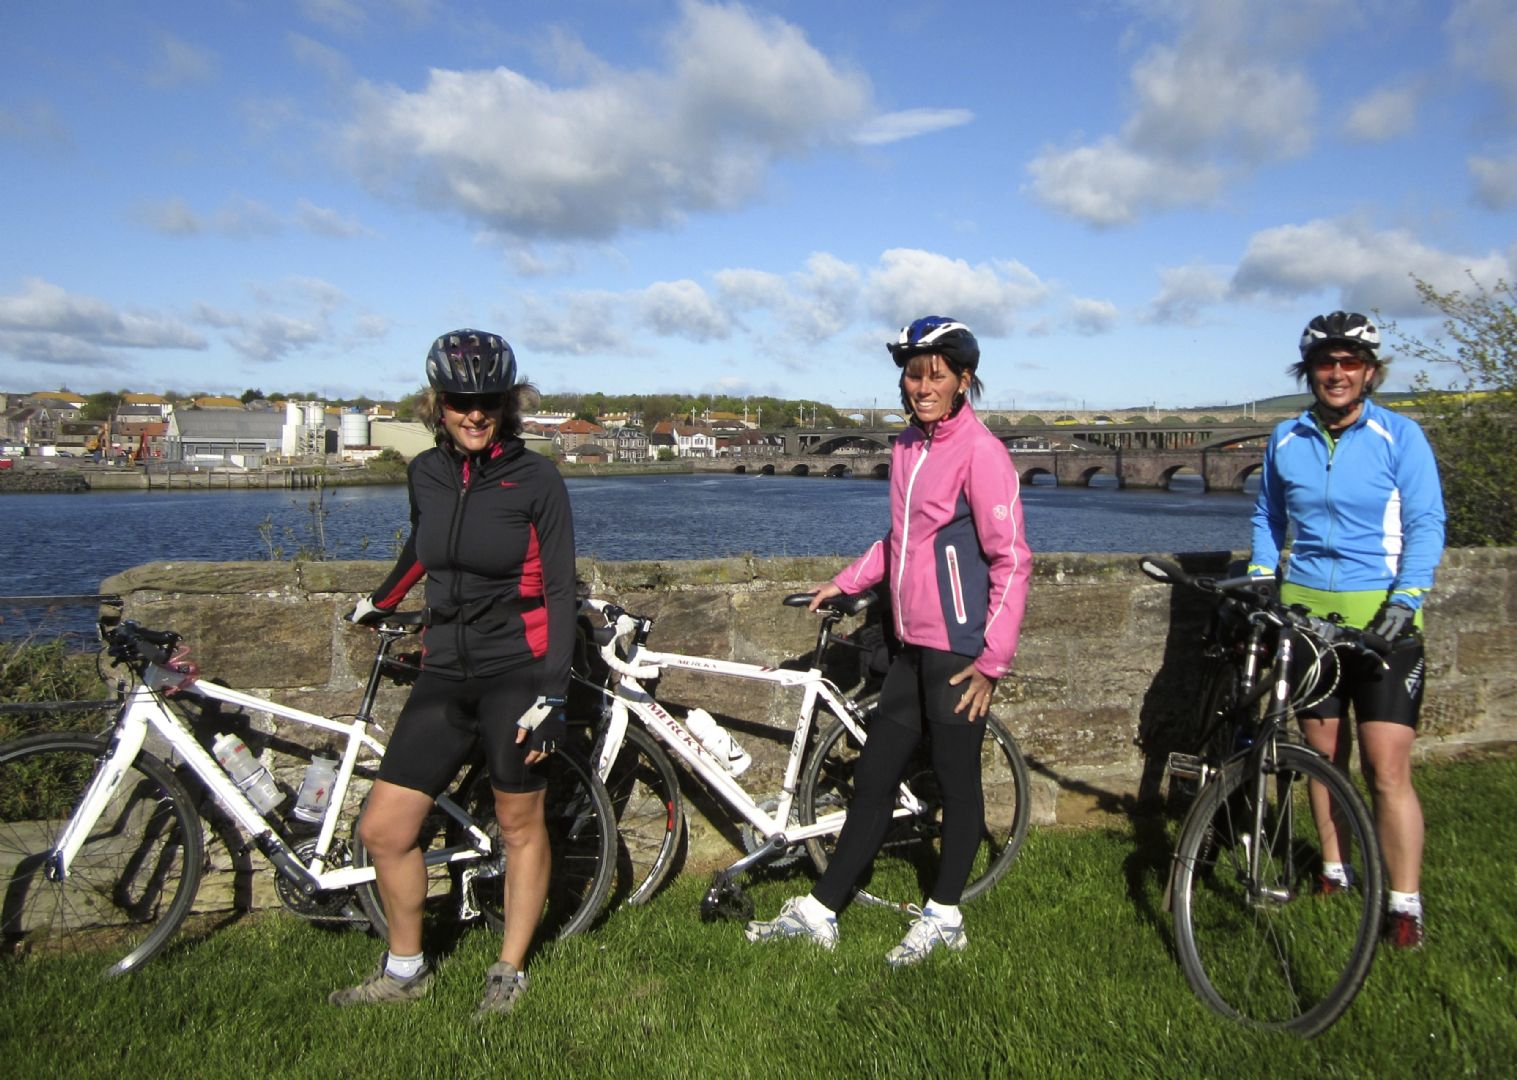 _Customer.102858.16224.jpg - UK - Coast and Castles - Self-Guided Leisure Cycling Holiday - Leisure Cycling